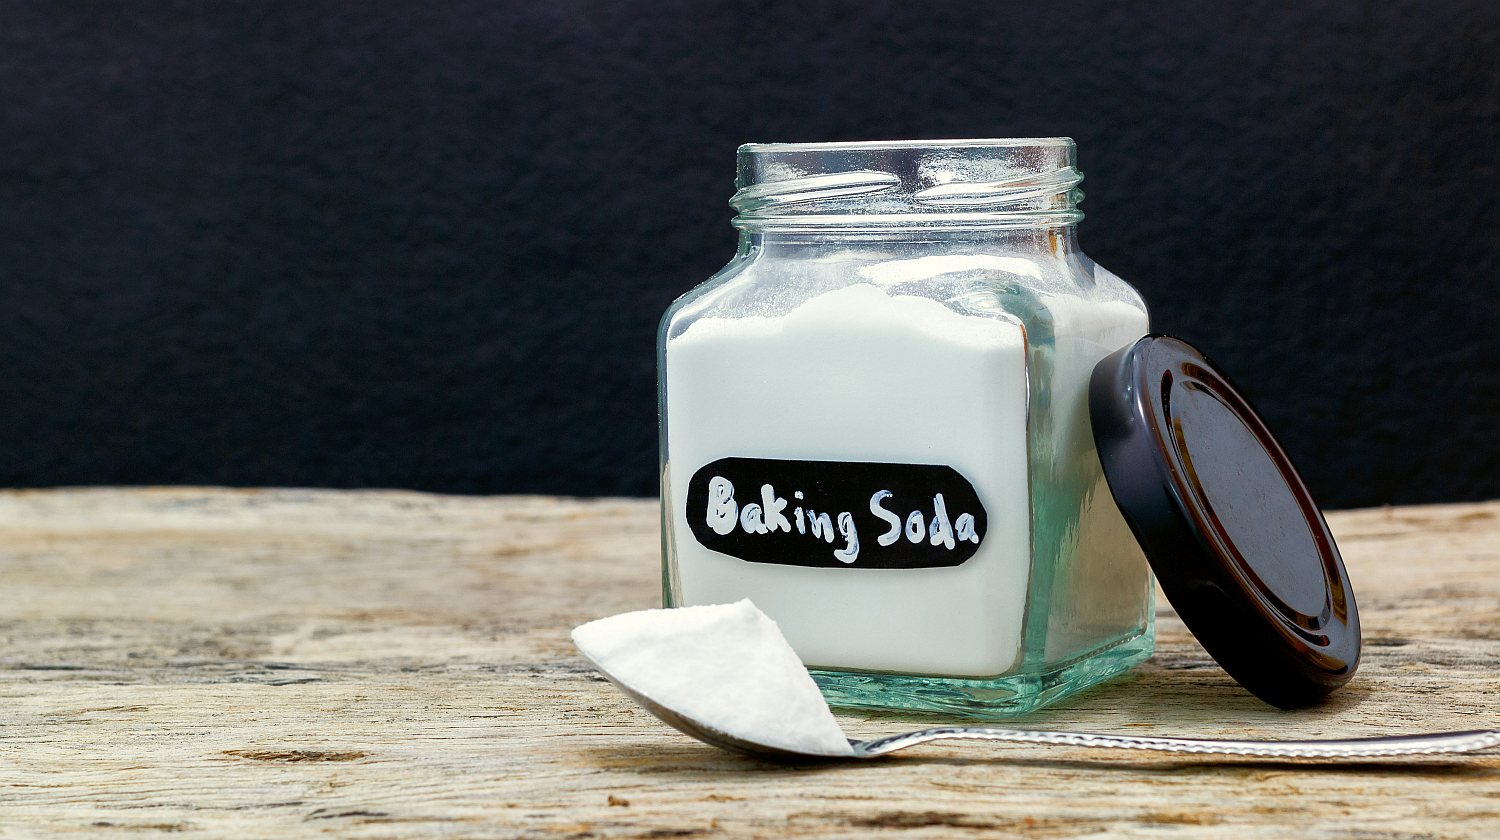 Feature | Baking soda in a jar | Surprising Benefits of Baking Soda